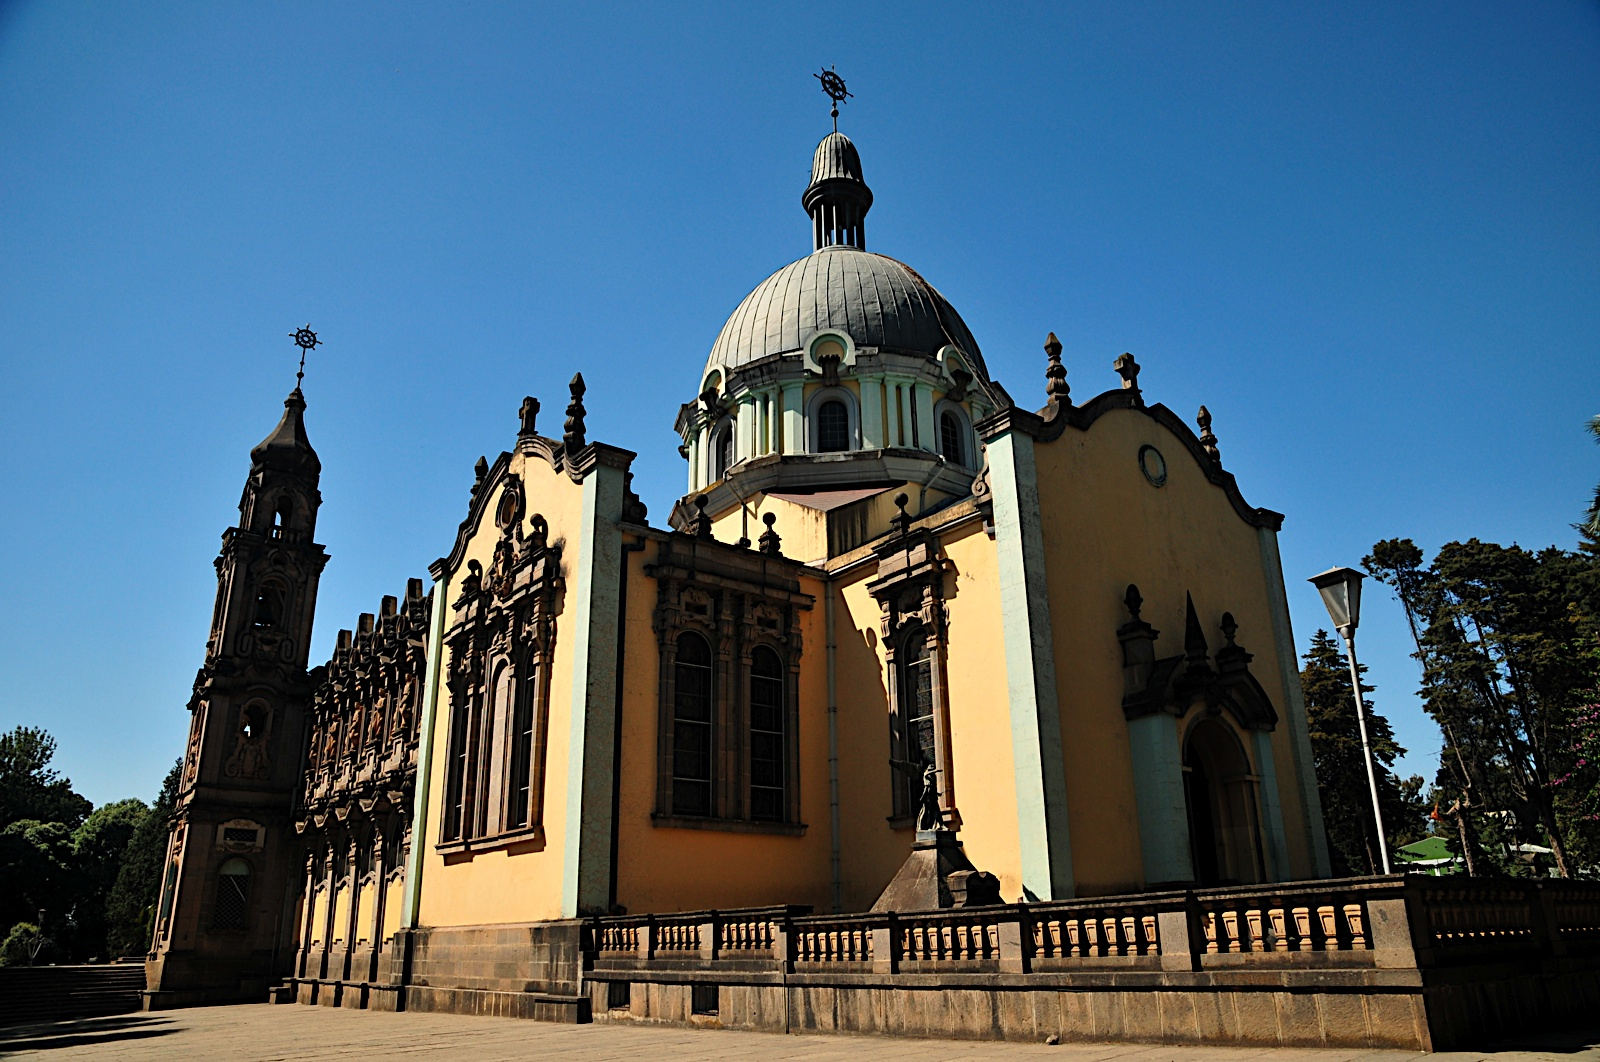 St George Cathedral & Museum Addis Ababa, TOP 21 THINGS TO DO IN ADDIS ABABA, ETHIOPIA